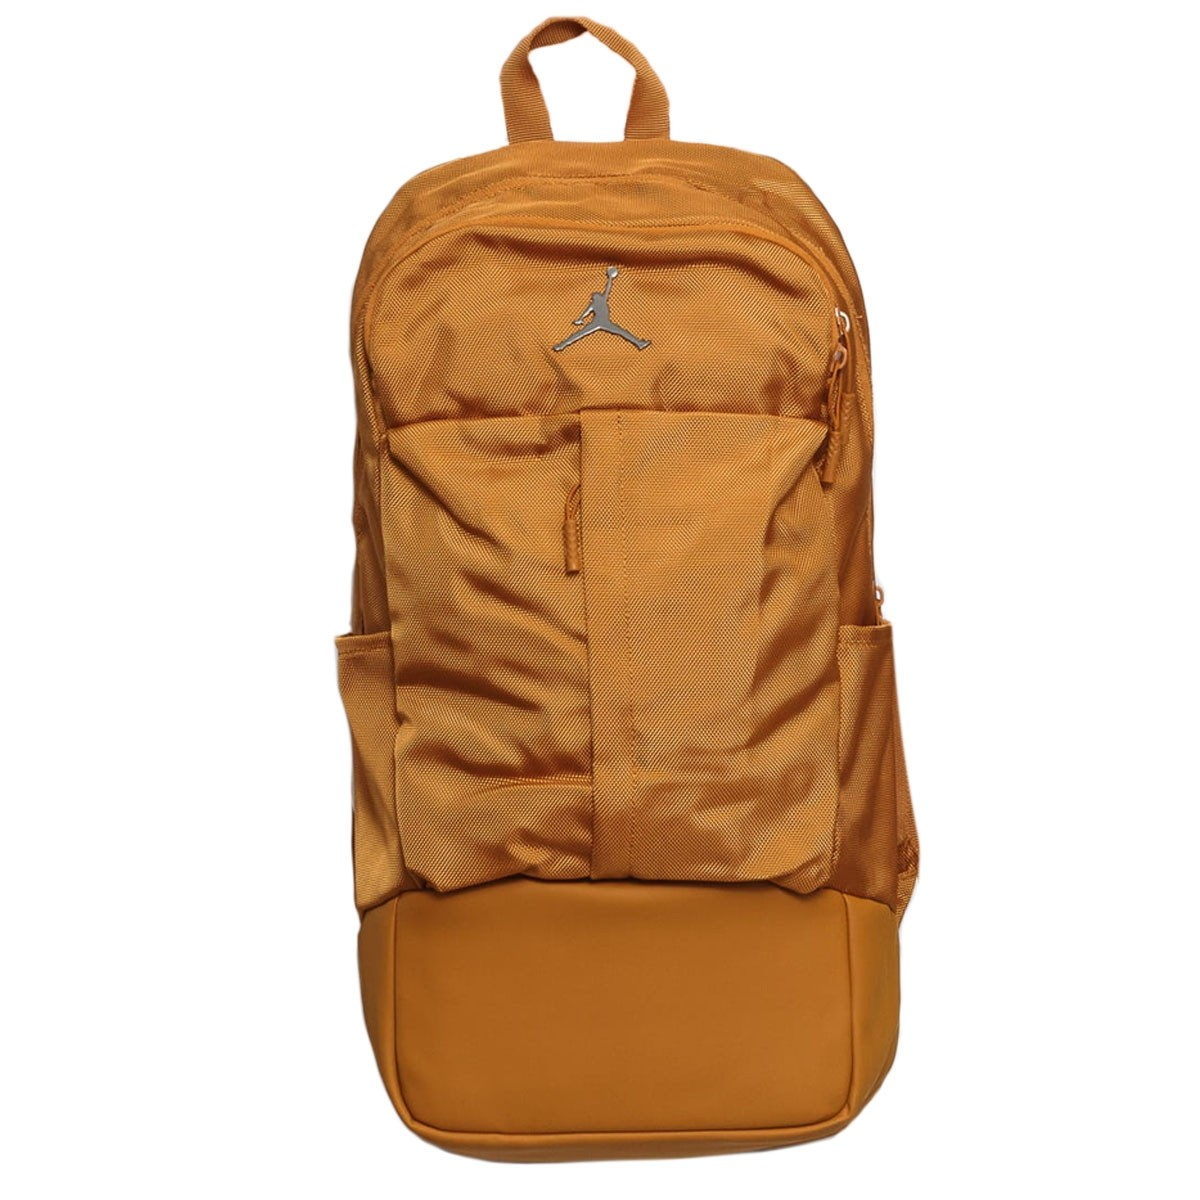 Jordan Fluid Backpack 'Gold'